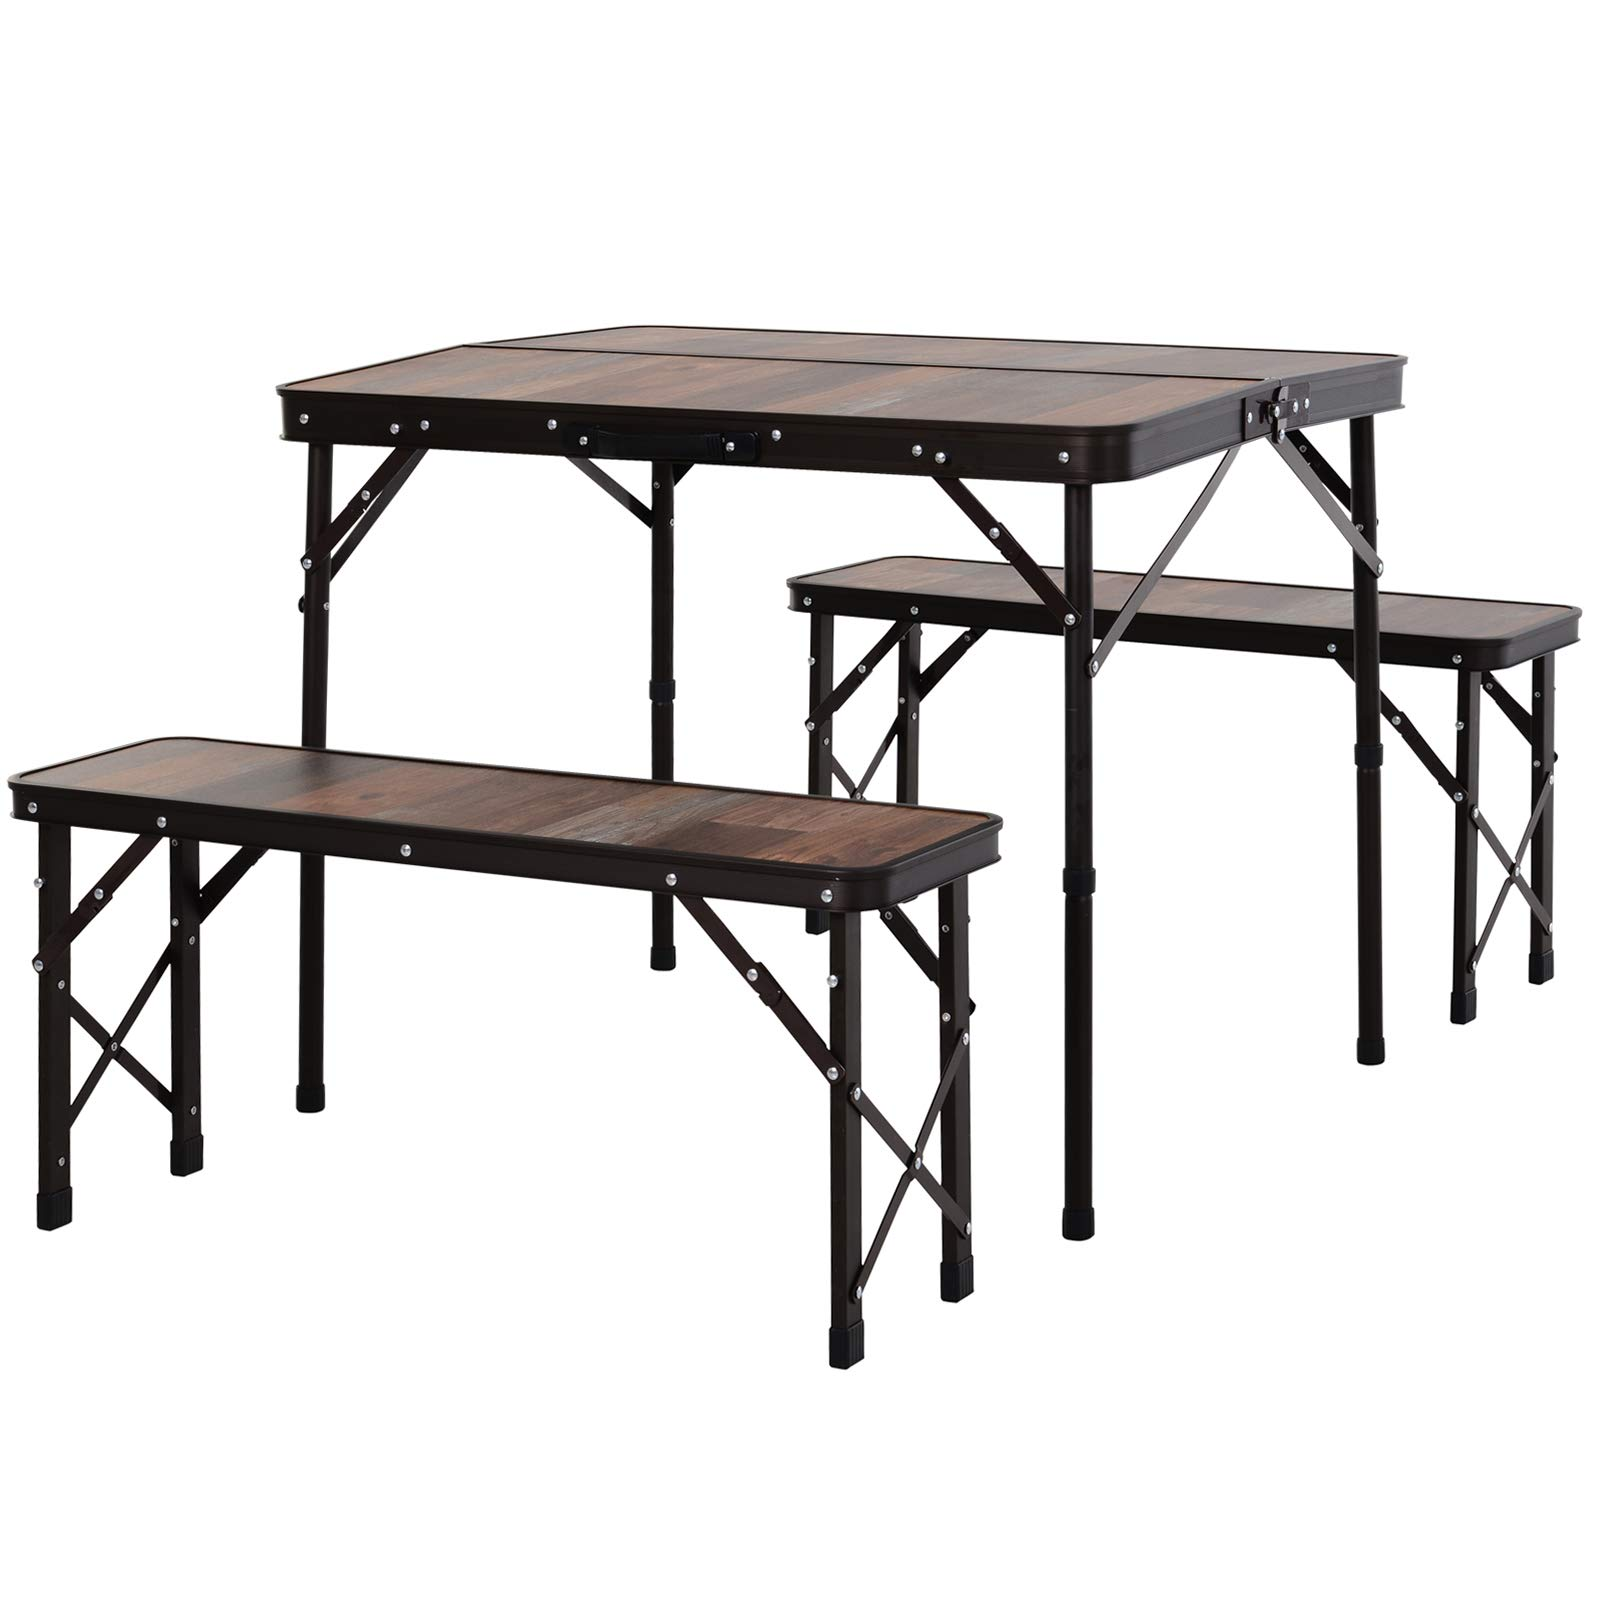 Outsunny Folding Table Chairs Picnic Portable Camping Dining Garden Patio Bbq Aluminium Wood Colour Buy Online In Dominica At Dominica Desertcart Com Productid 188886437